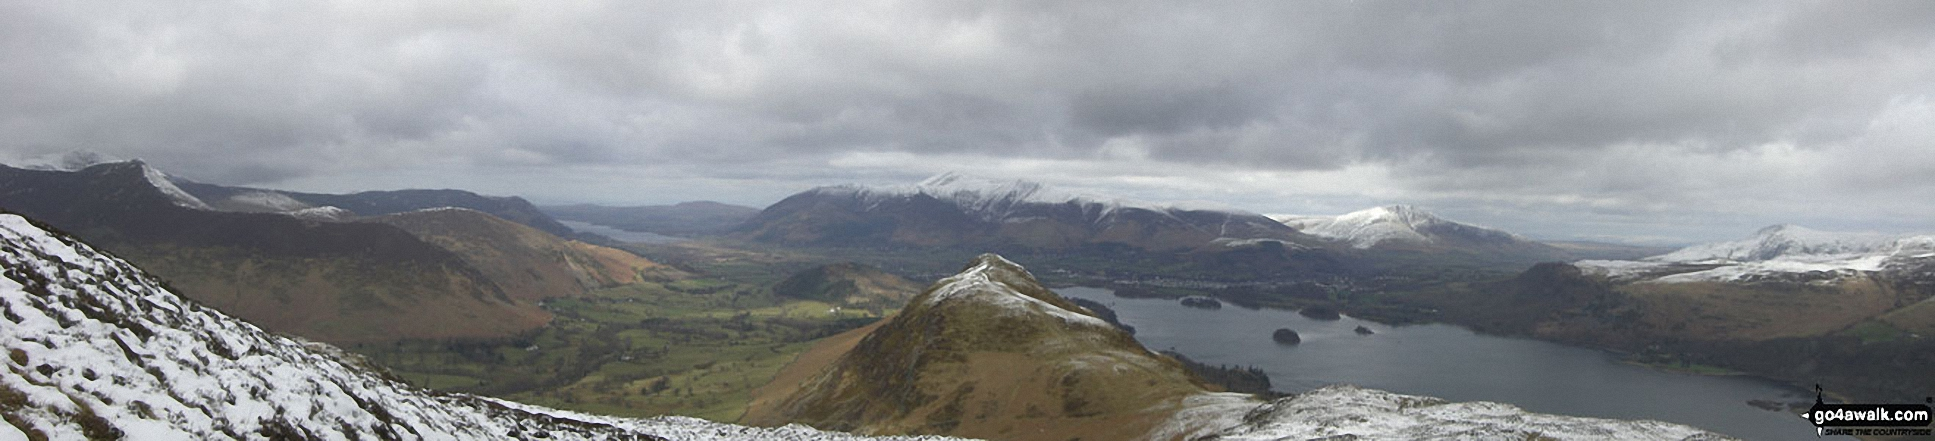 Causey Pike (left), Bassenthwaite Lake, Newlands, Swinside, Cat Bells (Catbells) (centre), Derwent Water, Skiddaw , Blencathra and Walla Crag (far right) from Maiden Moor